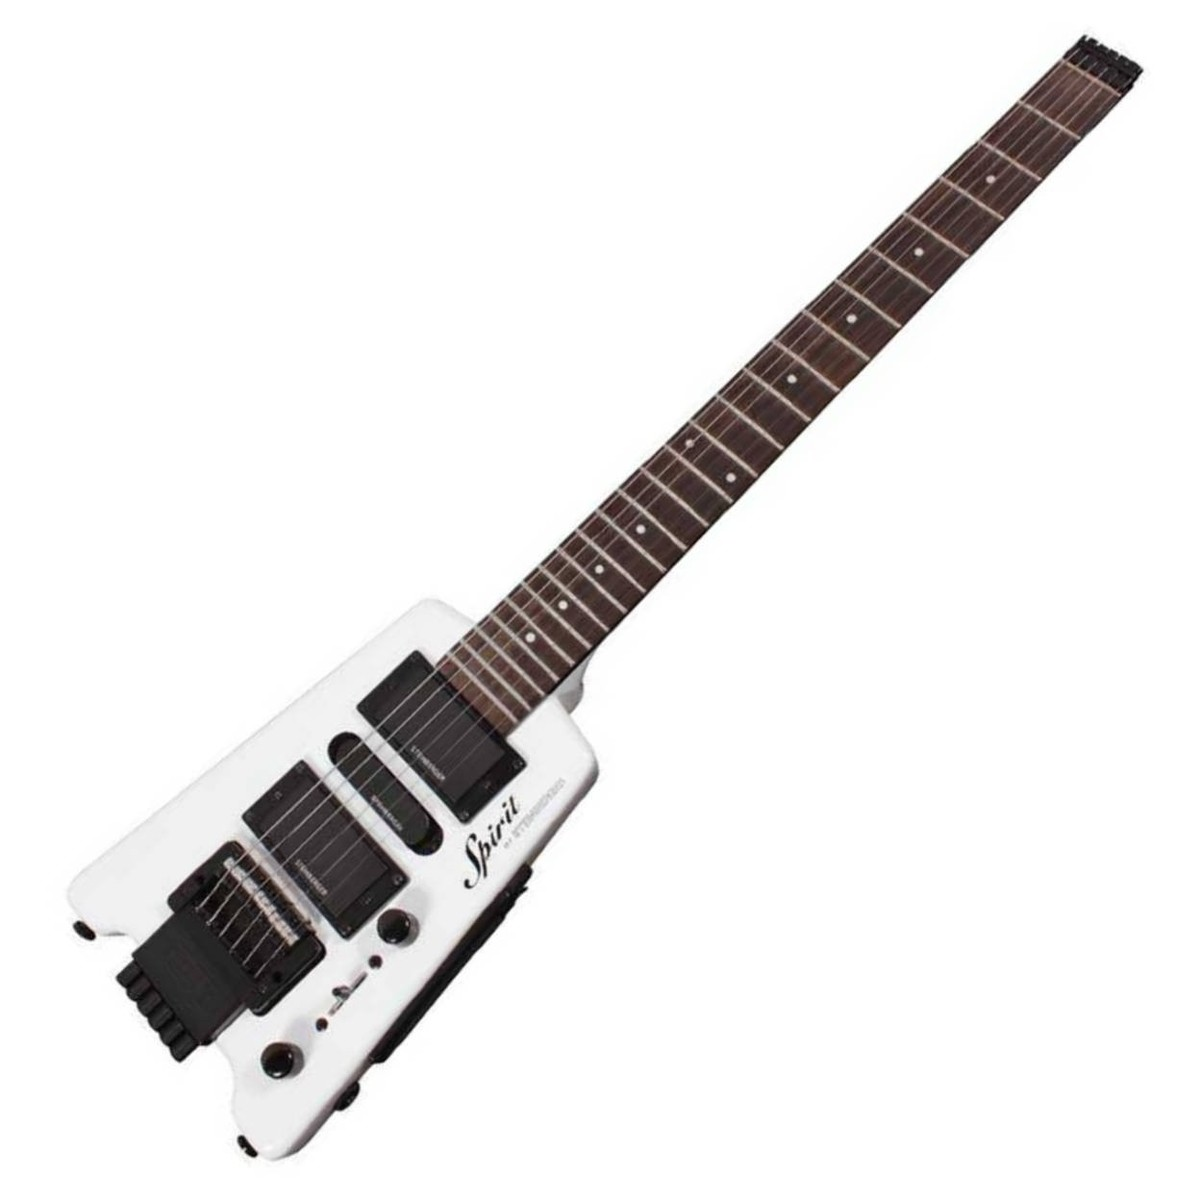 Steinberger Spirit Gt Pro Deluxe Electric Guitar White